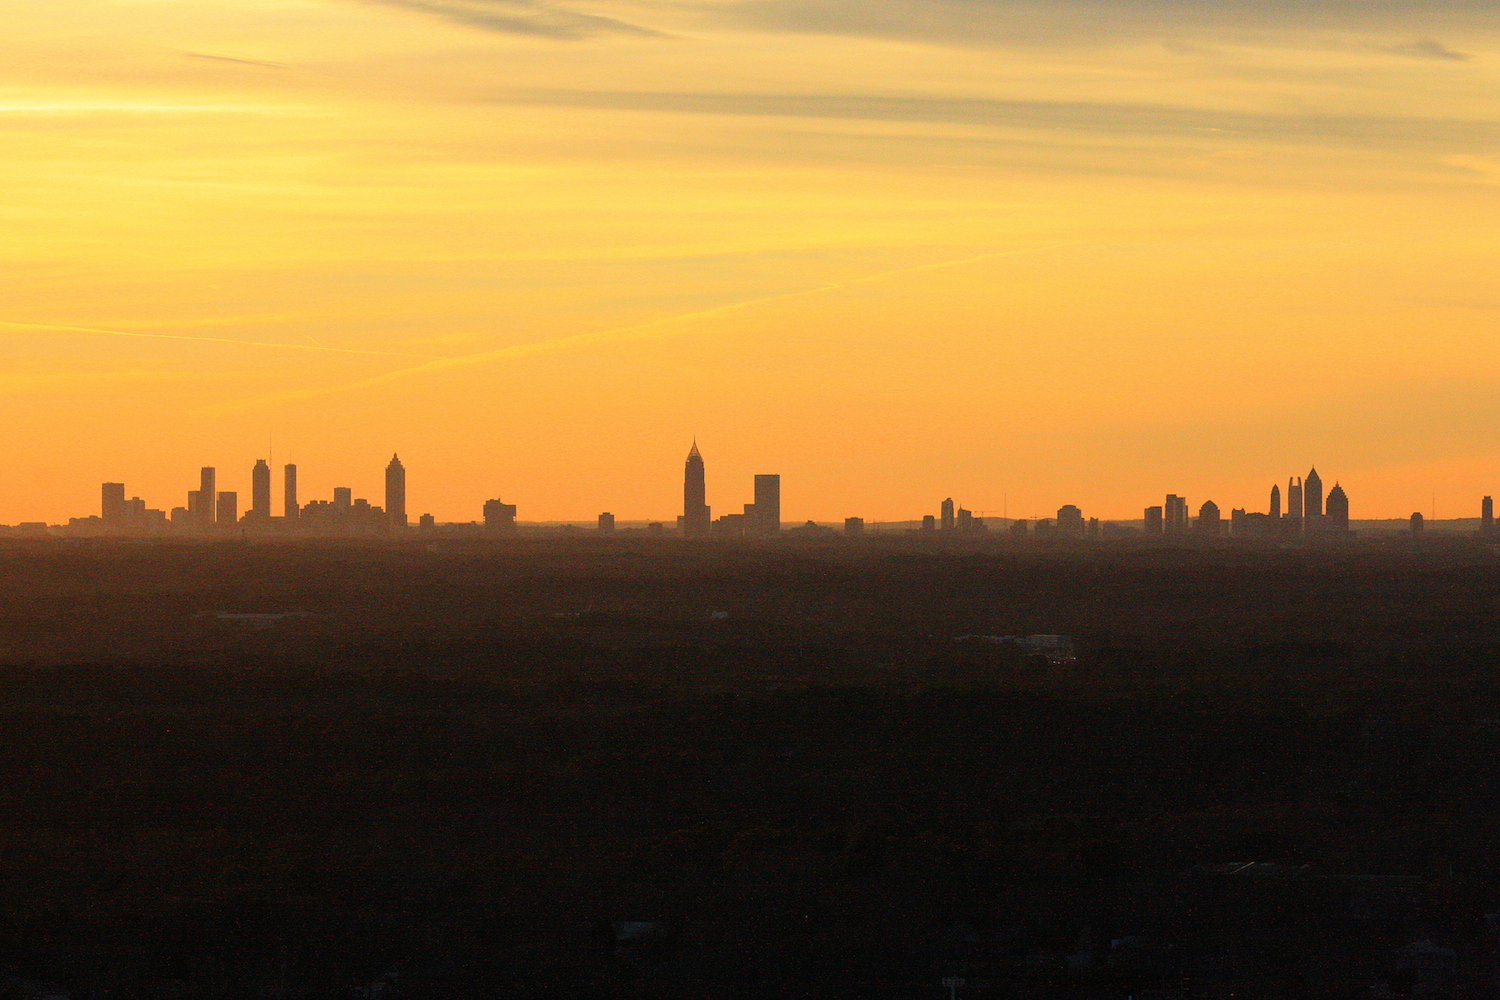 The skyline from Stone Mountain, with a yellow sunset topping a silhouette of the city.